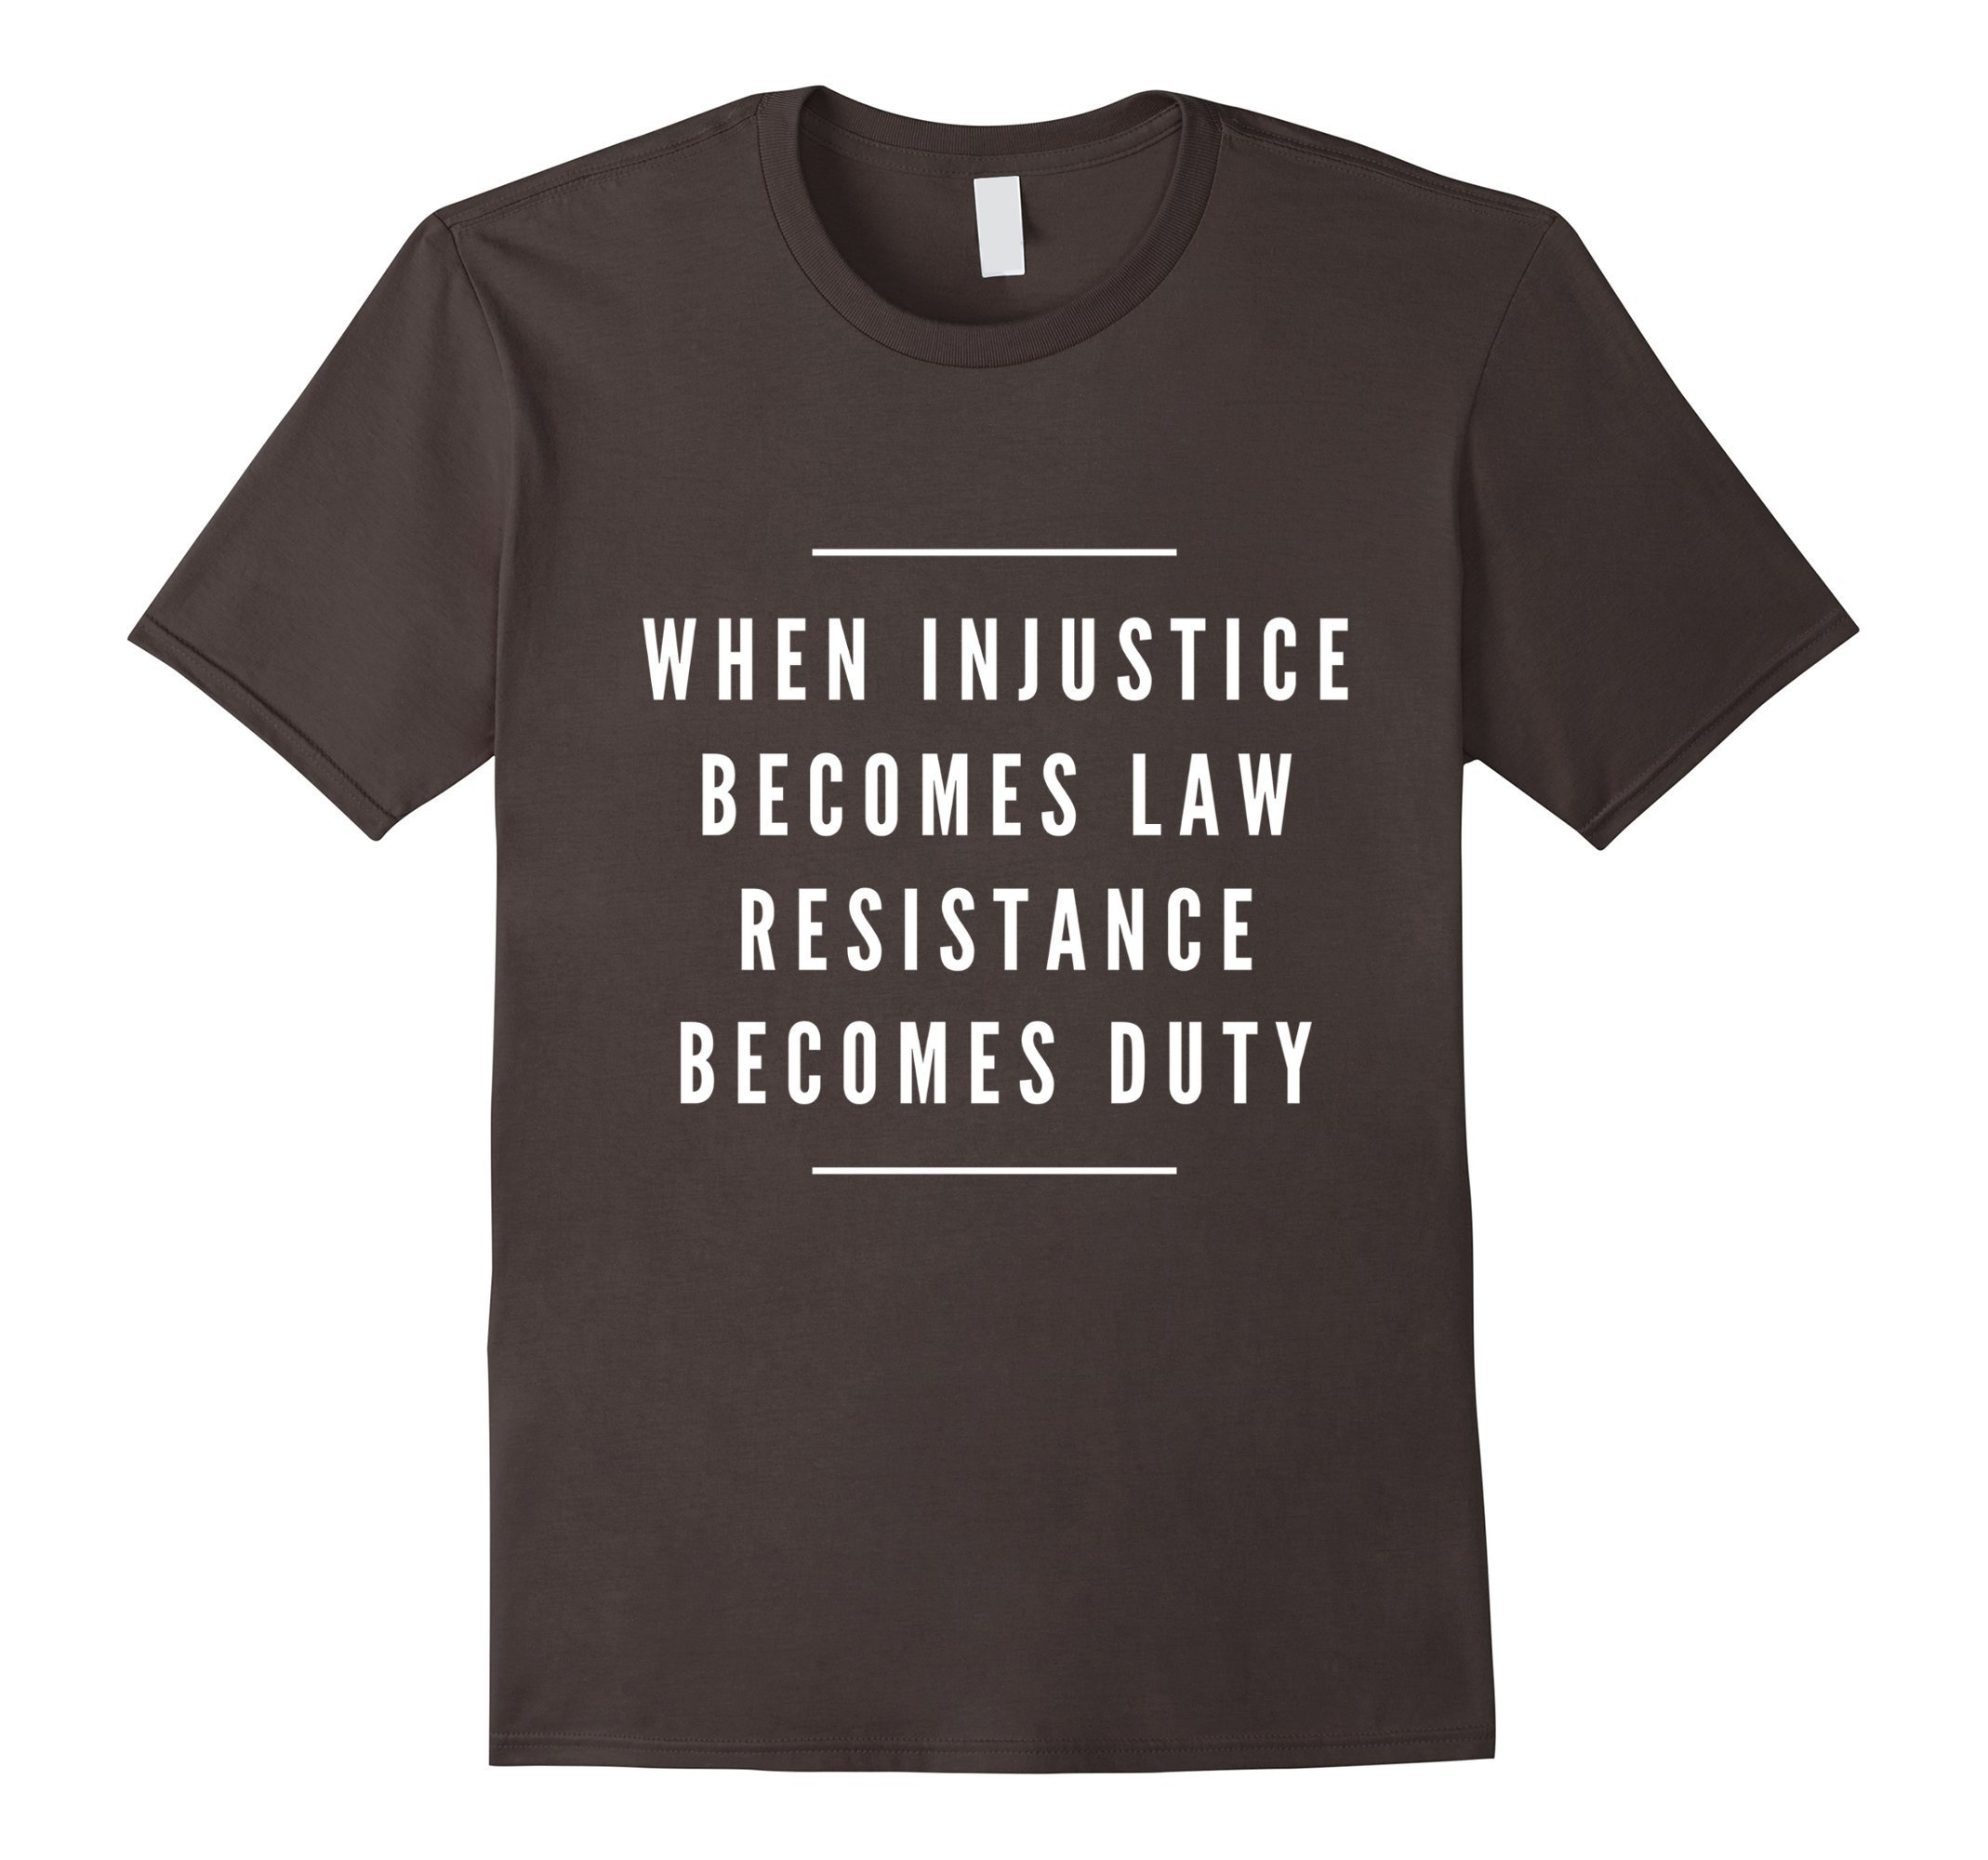 When injustice is law resistance is duty anti Trump t-shirt